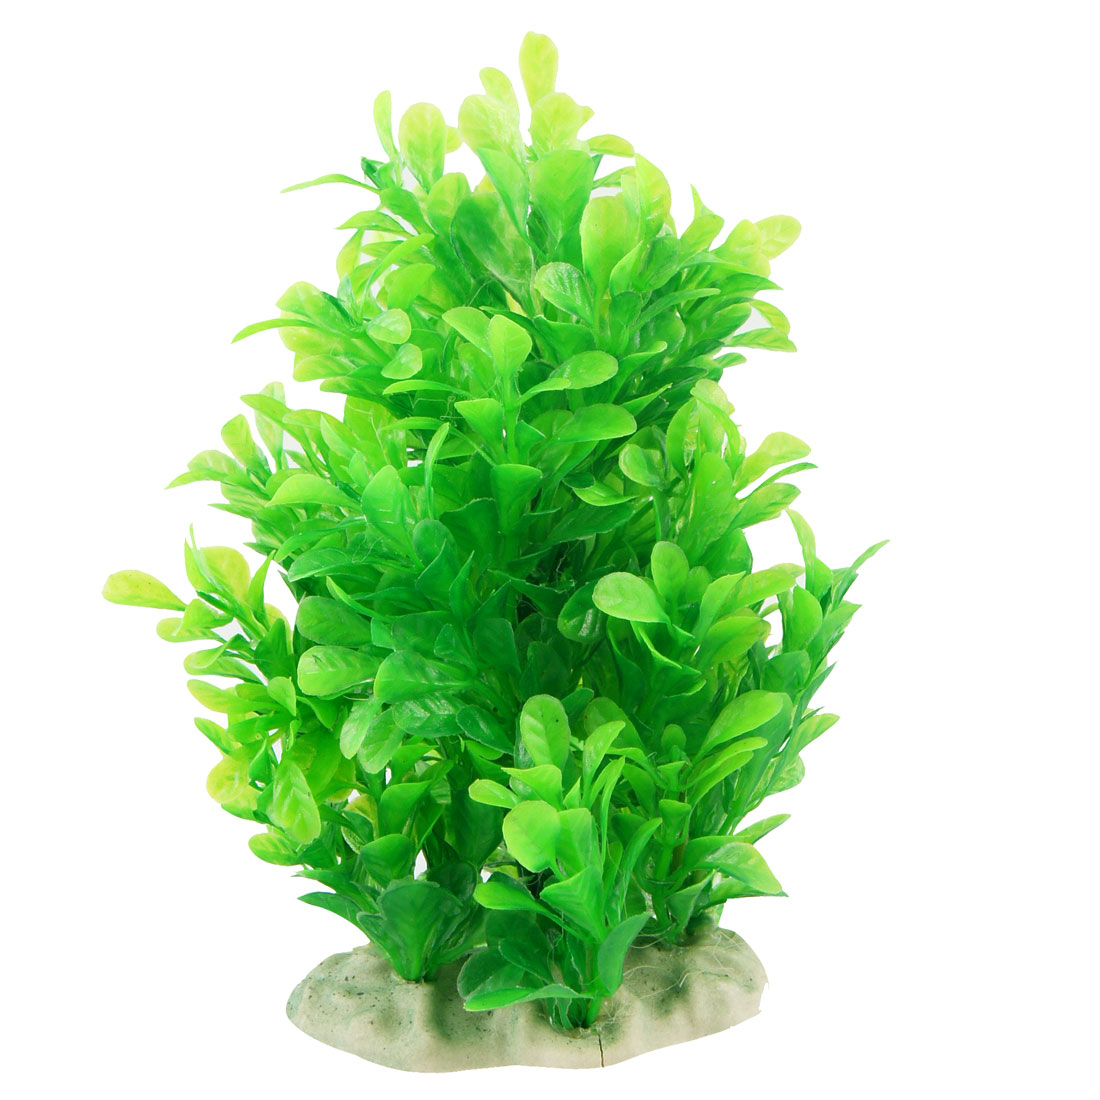 "Aquarium Decor 6.7"" Height Artificial Plastic Grass Plant Green"